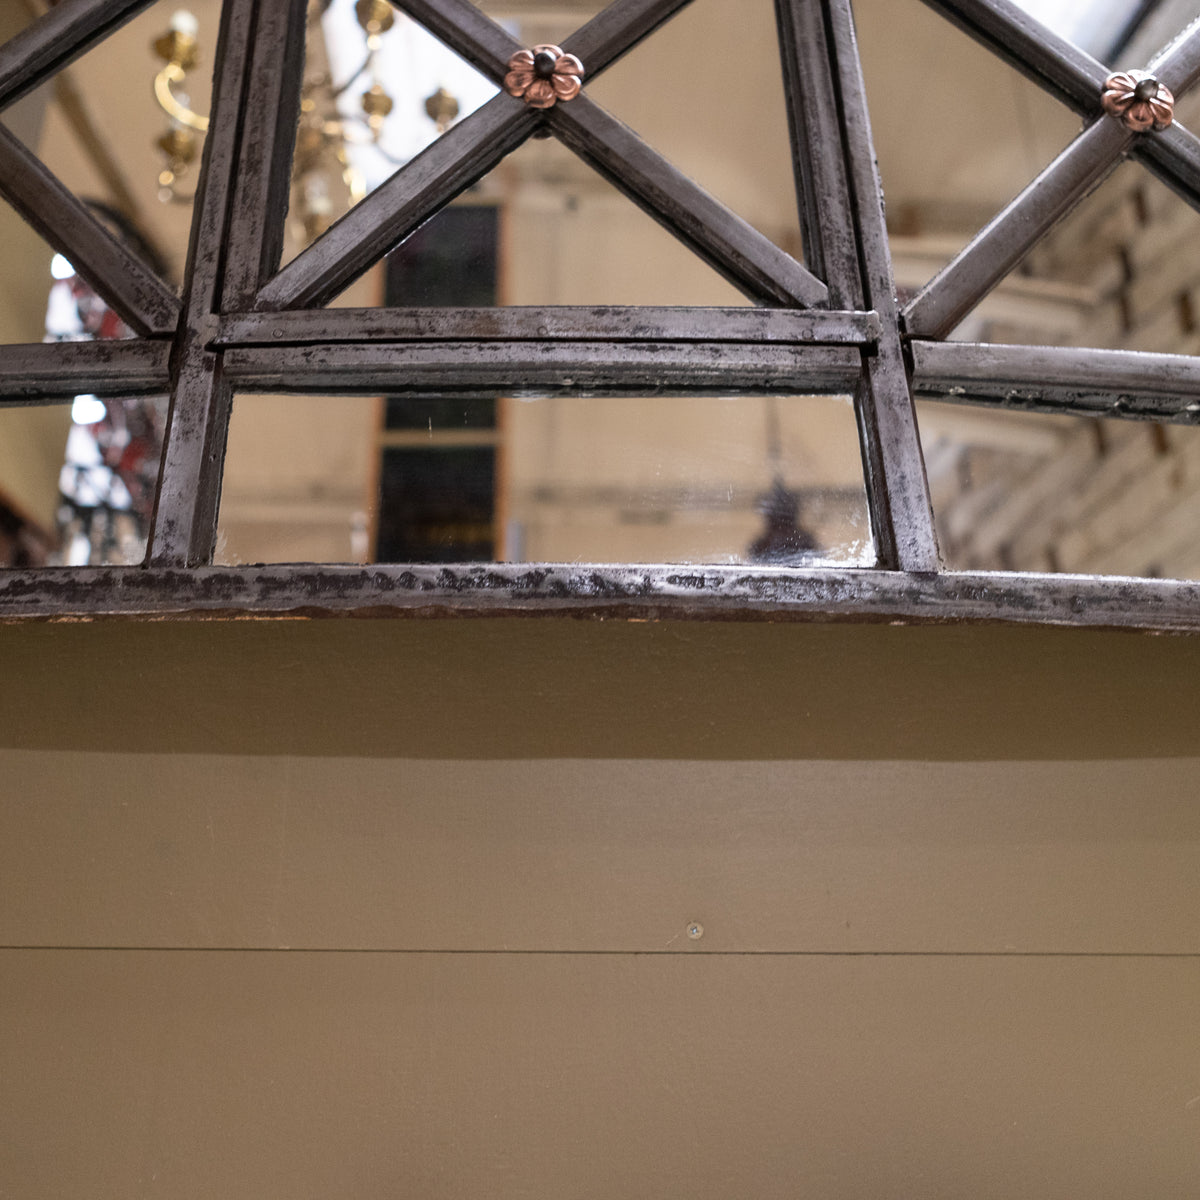 Transformed Antique Tate Britain Gallery Window Frame Mirror | The Architectural Forum